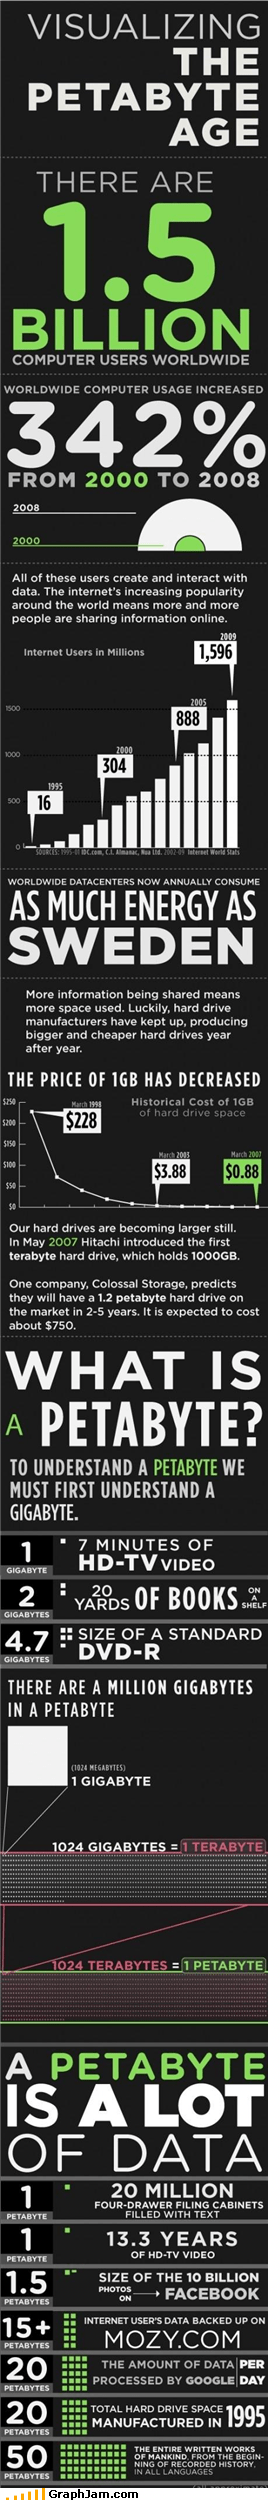 data infographic numbers petabyte